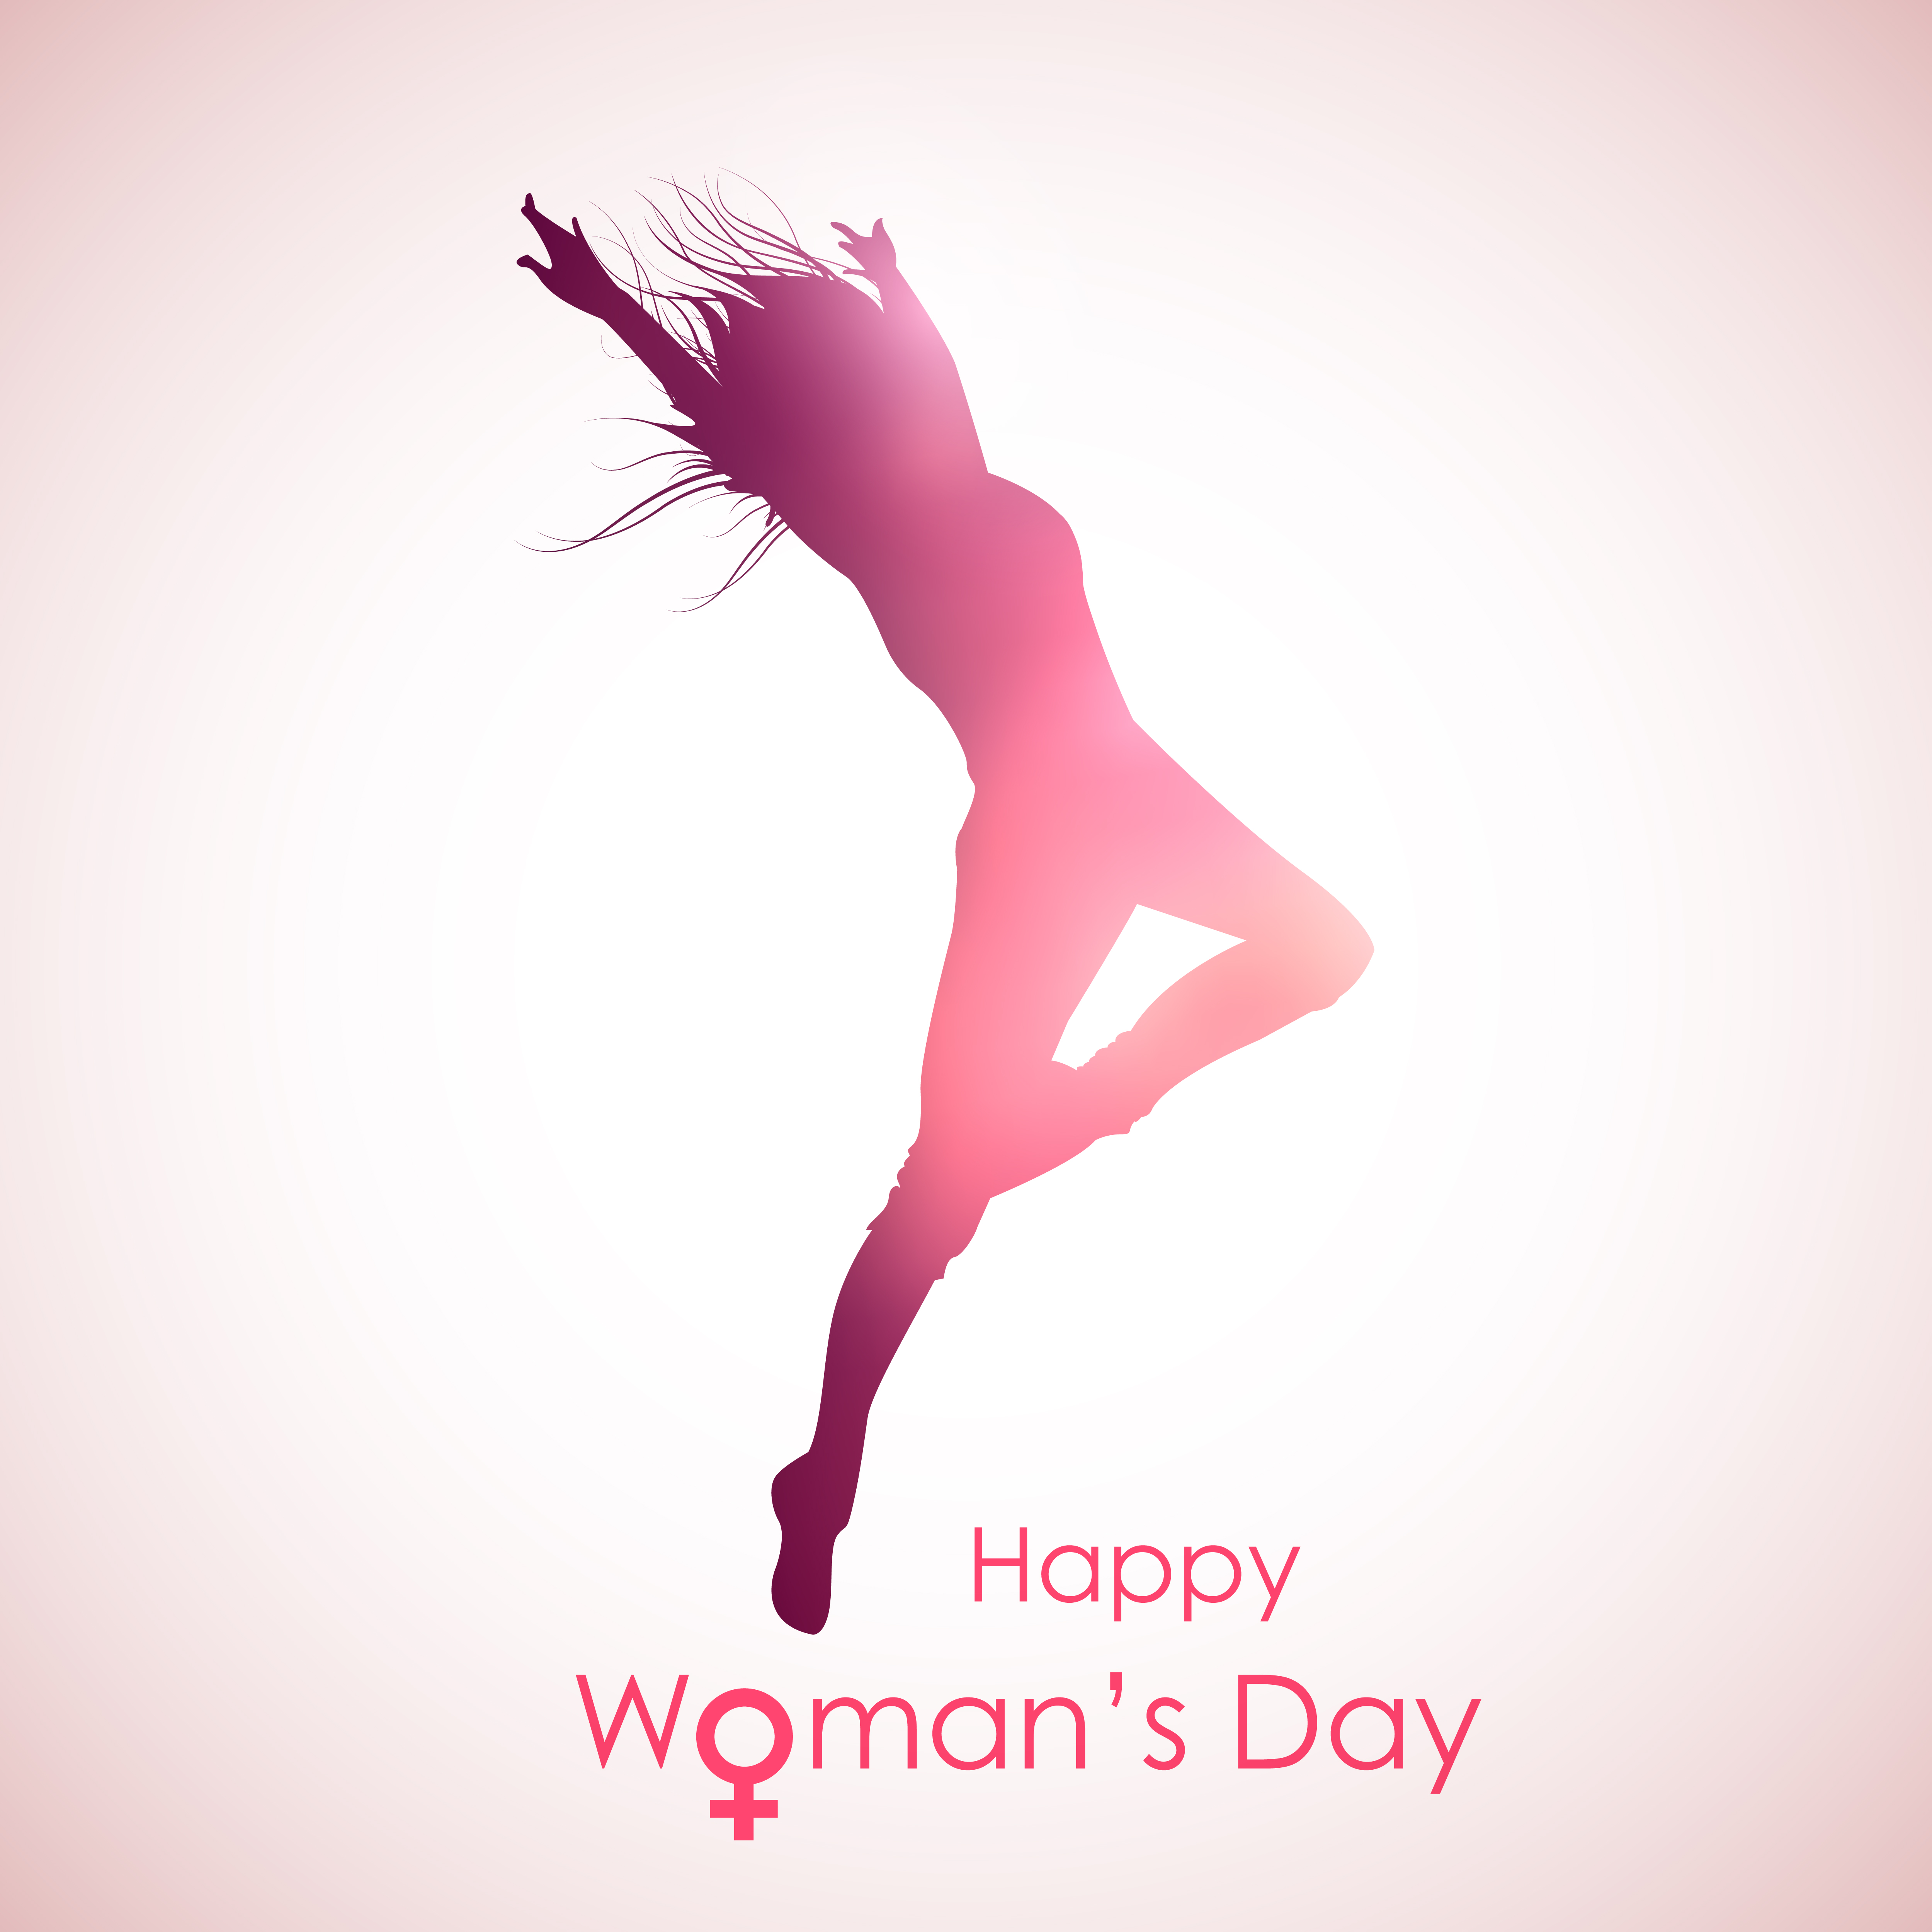 illustration of Happy Woman's Day concept